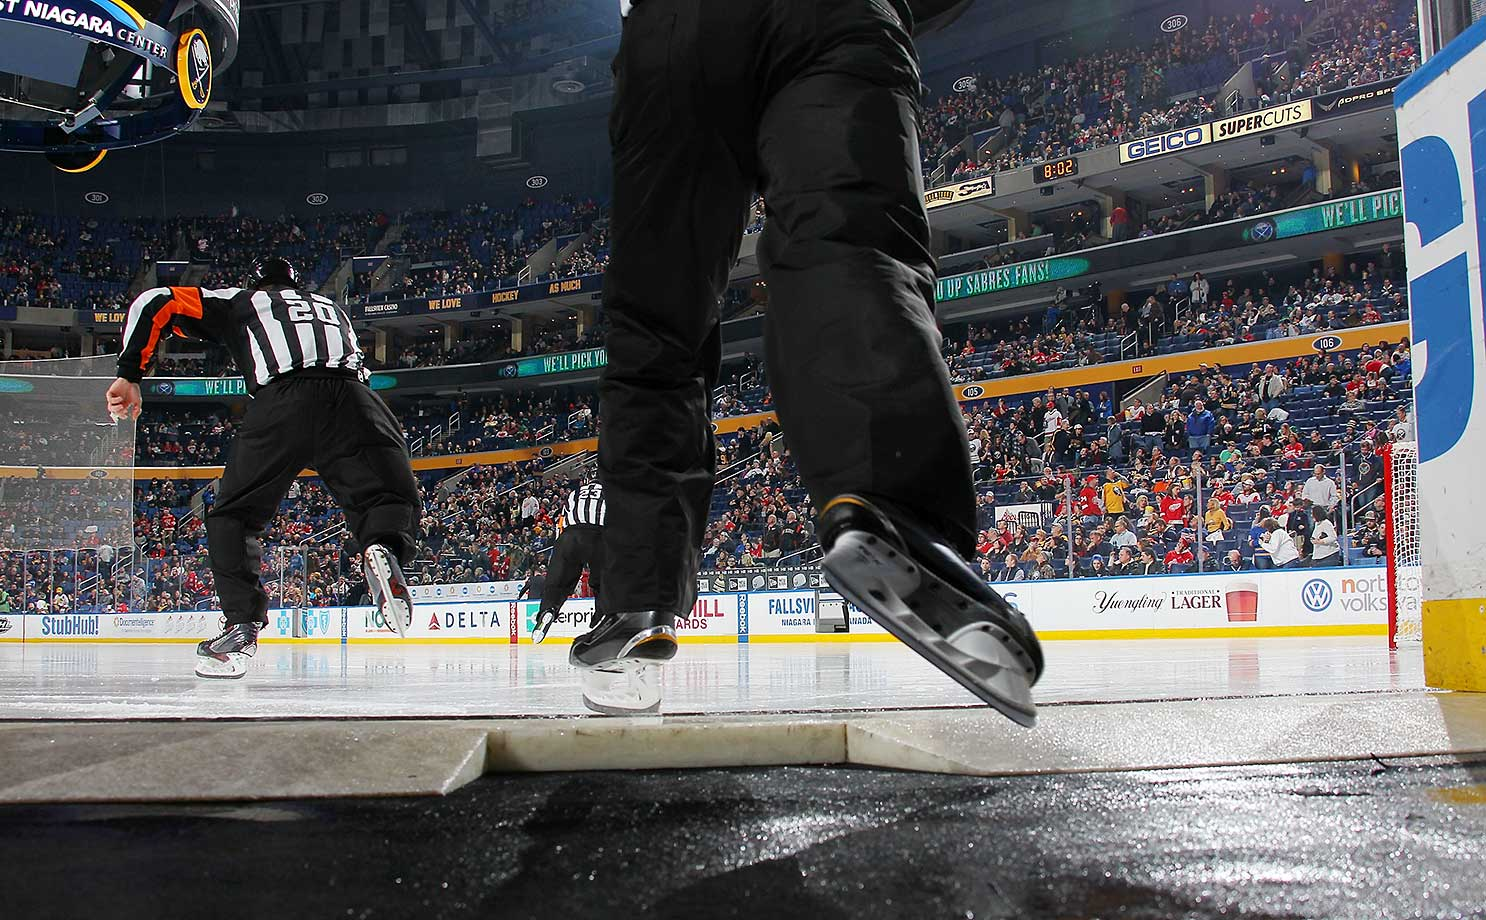 Referee Tim Peel and linesman Greg Devorski skate onto the ice to officiate the NHL game between the Buffalo Sabres and the Detroit Red Wings at the First Niagara Center in New York.